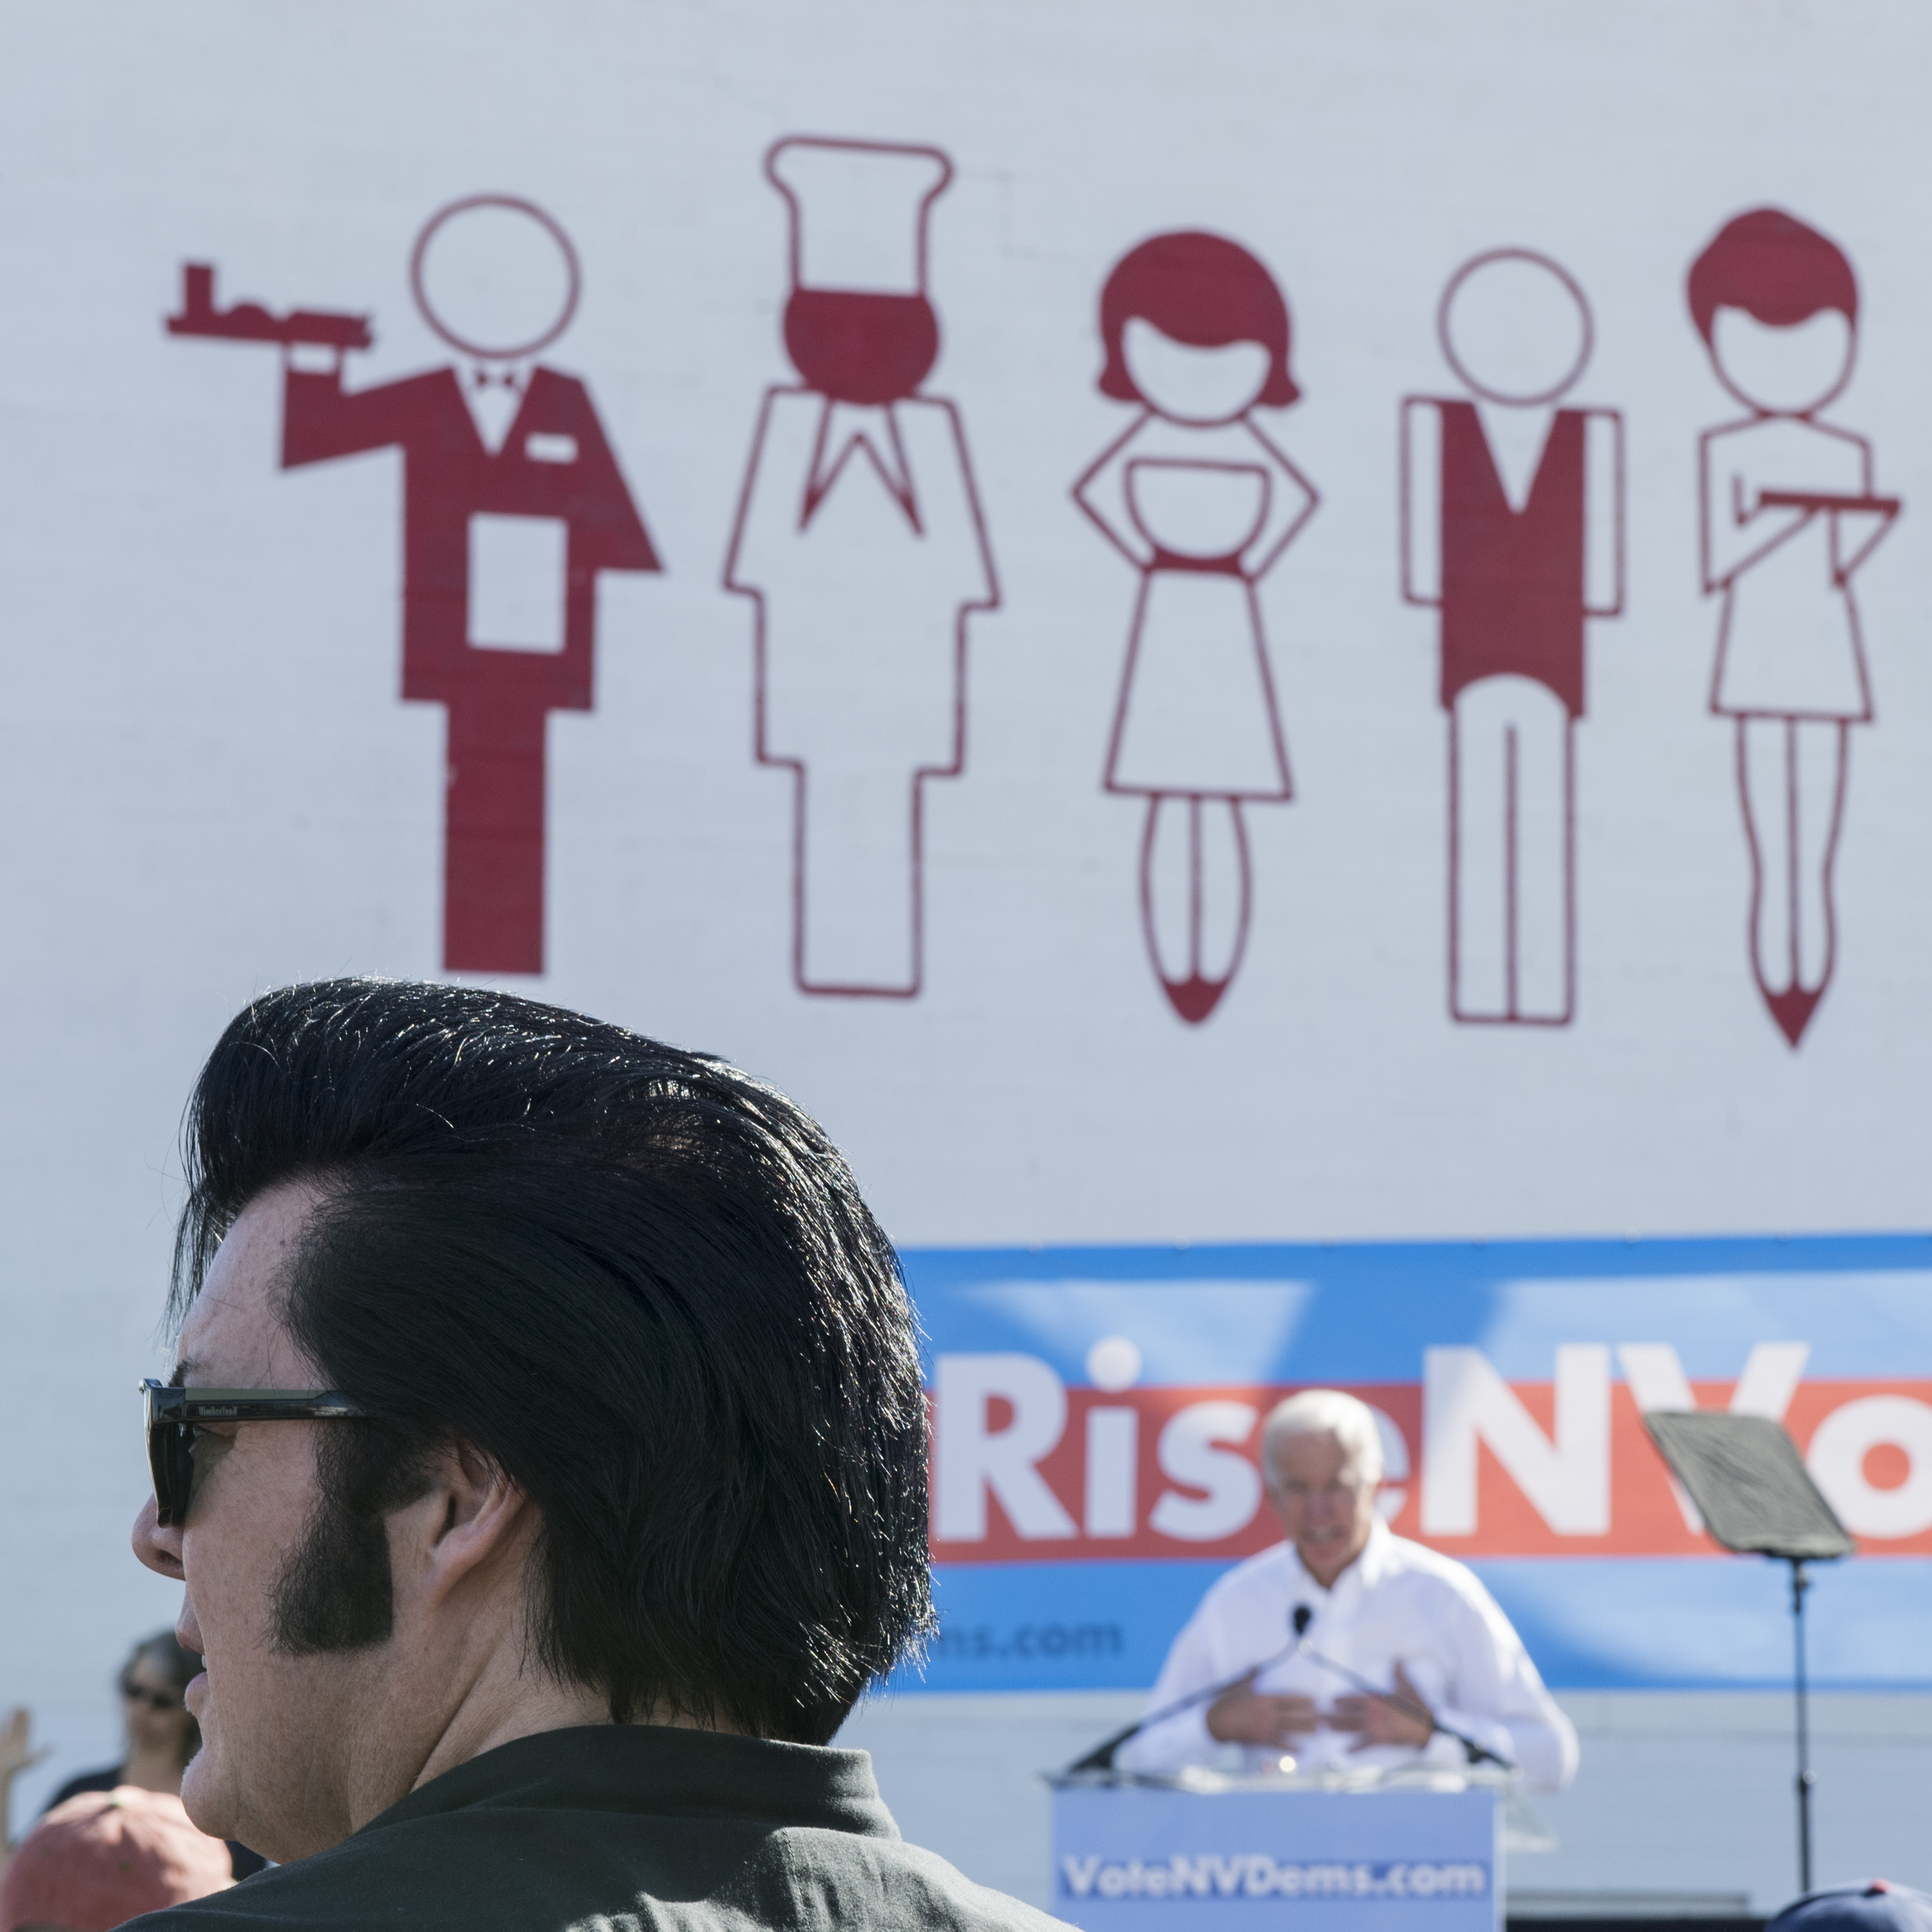 UNITED STATES - OCTOBER 20: An Elvis impersonator looks on as former Vice President Joe Biden speaks at the Nevada Democrats' early vote rally at the Culinary Workers Union Local 226 in Las Vegas on Saturday, Oct. 20, 2018, the first day of early voting in Nevada. (Photo By Bill Clark/CQ Roll Call)